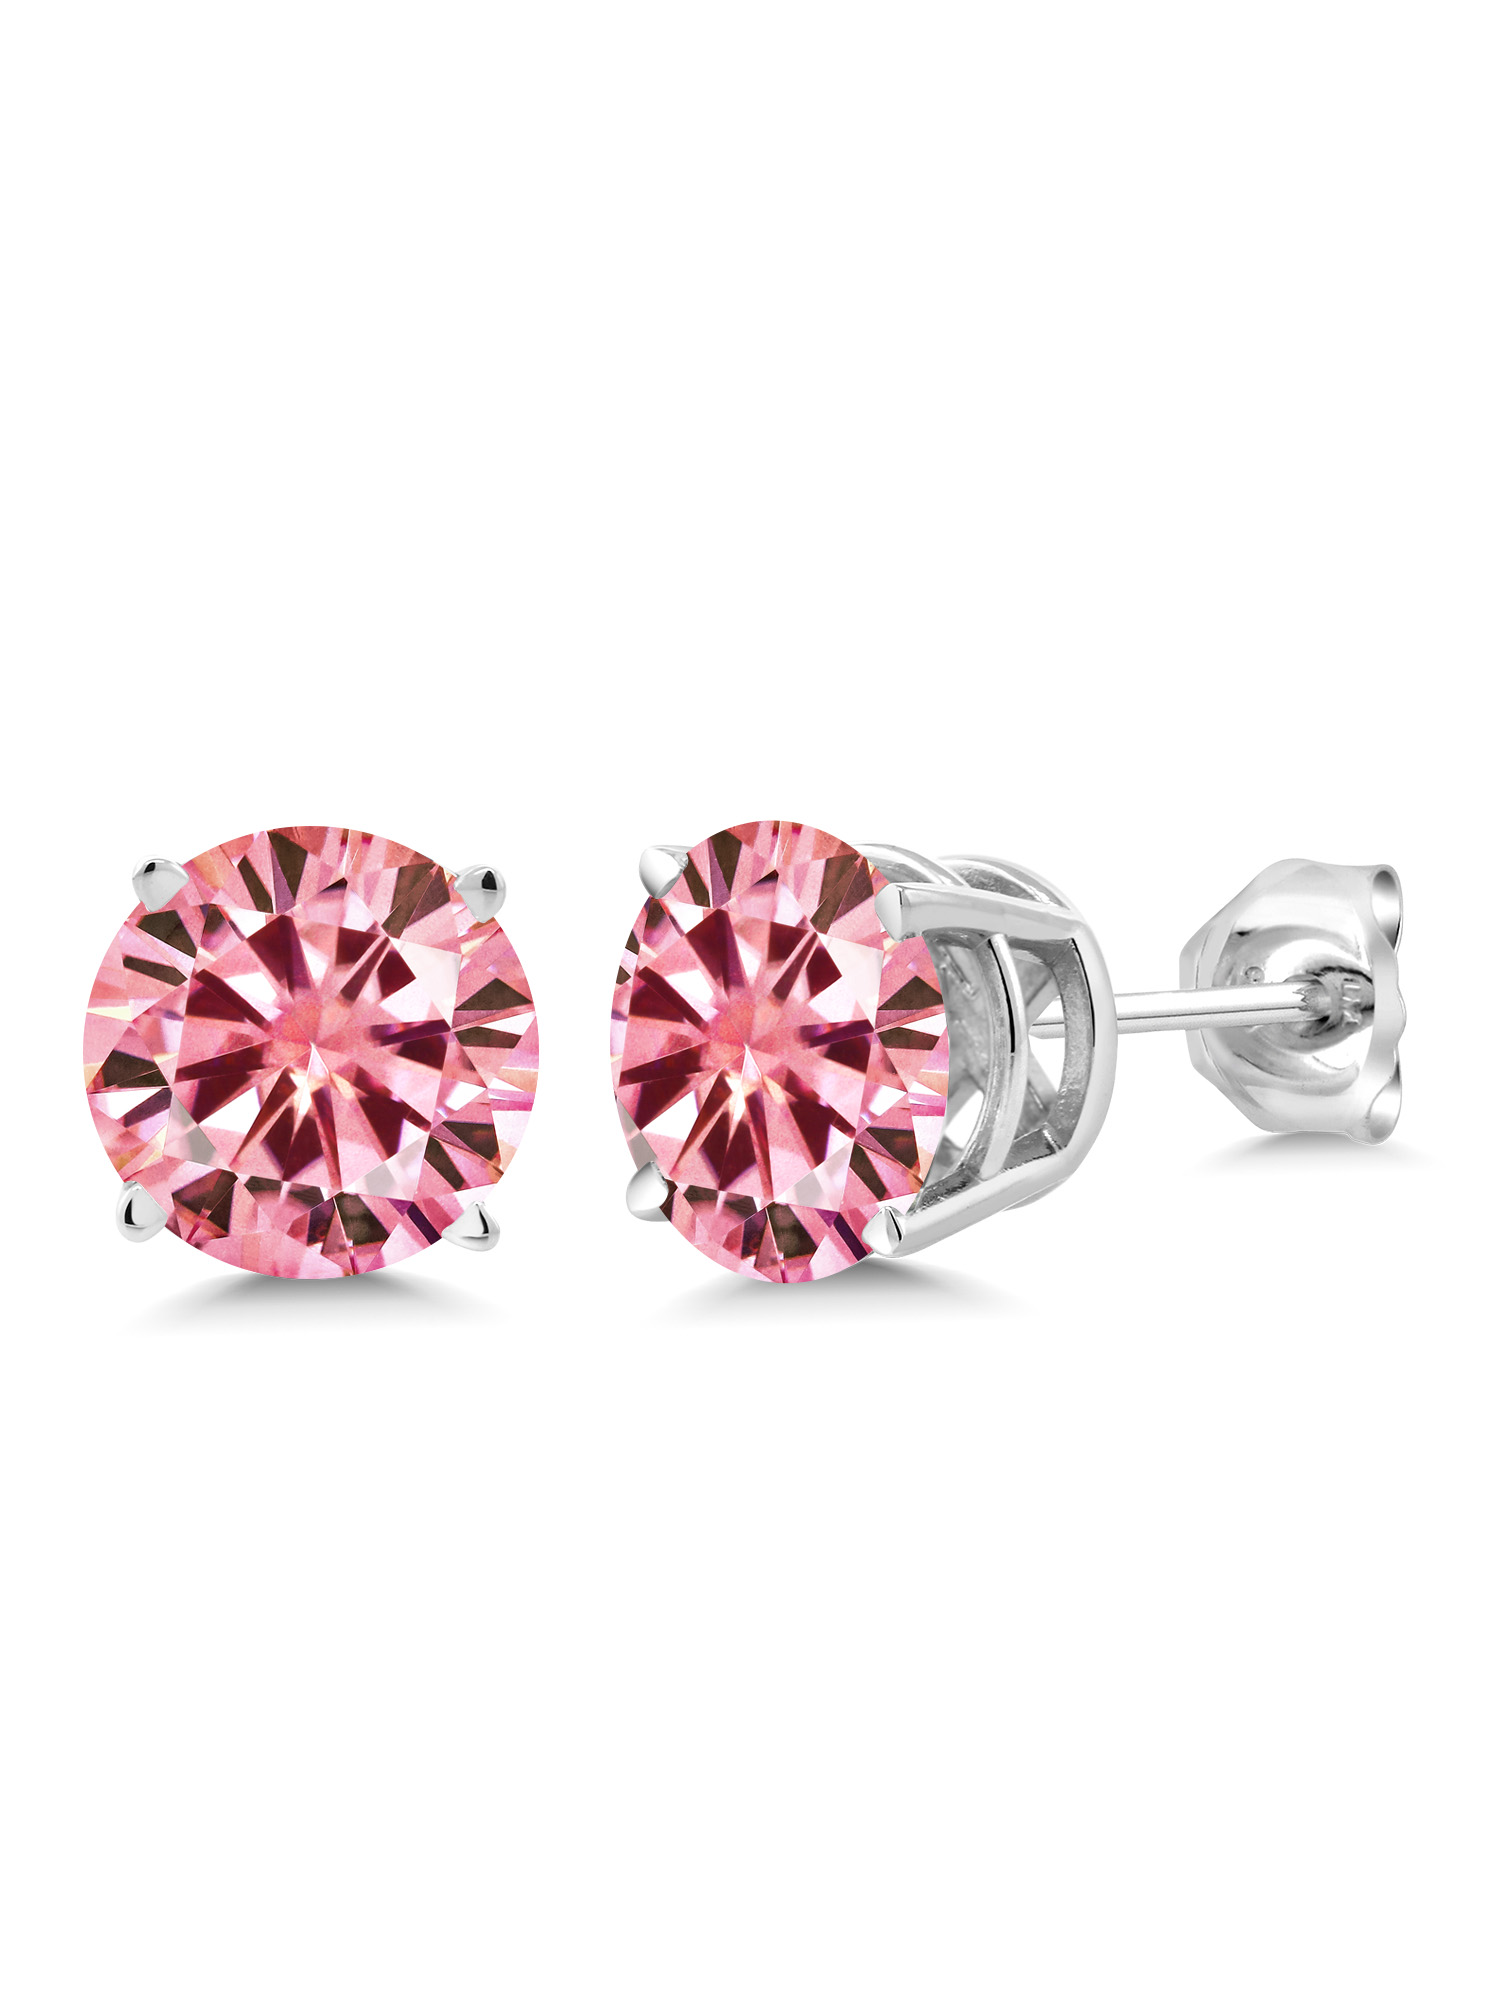 925 Sterling Silver Stud Earrings Pink Round Created Moissanite 2.00ct DEW